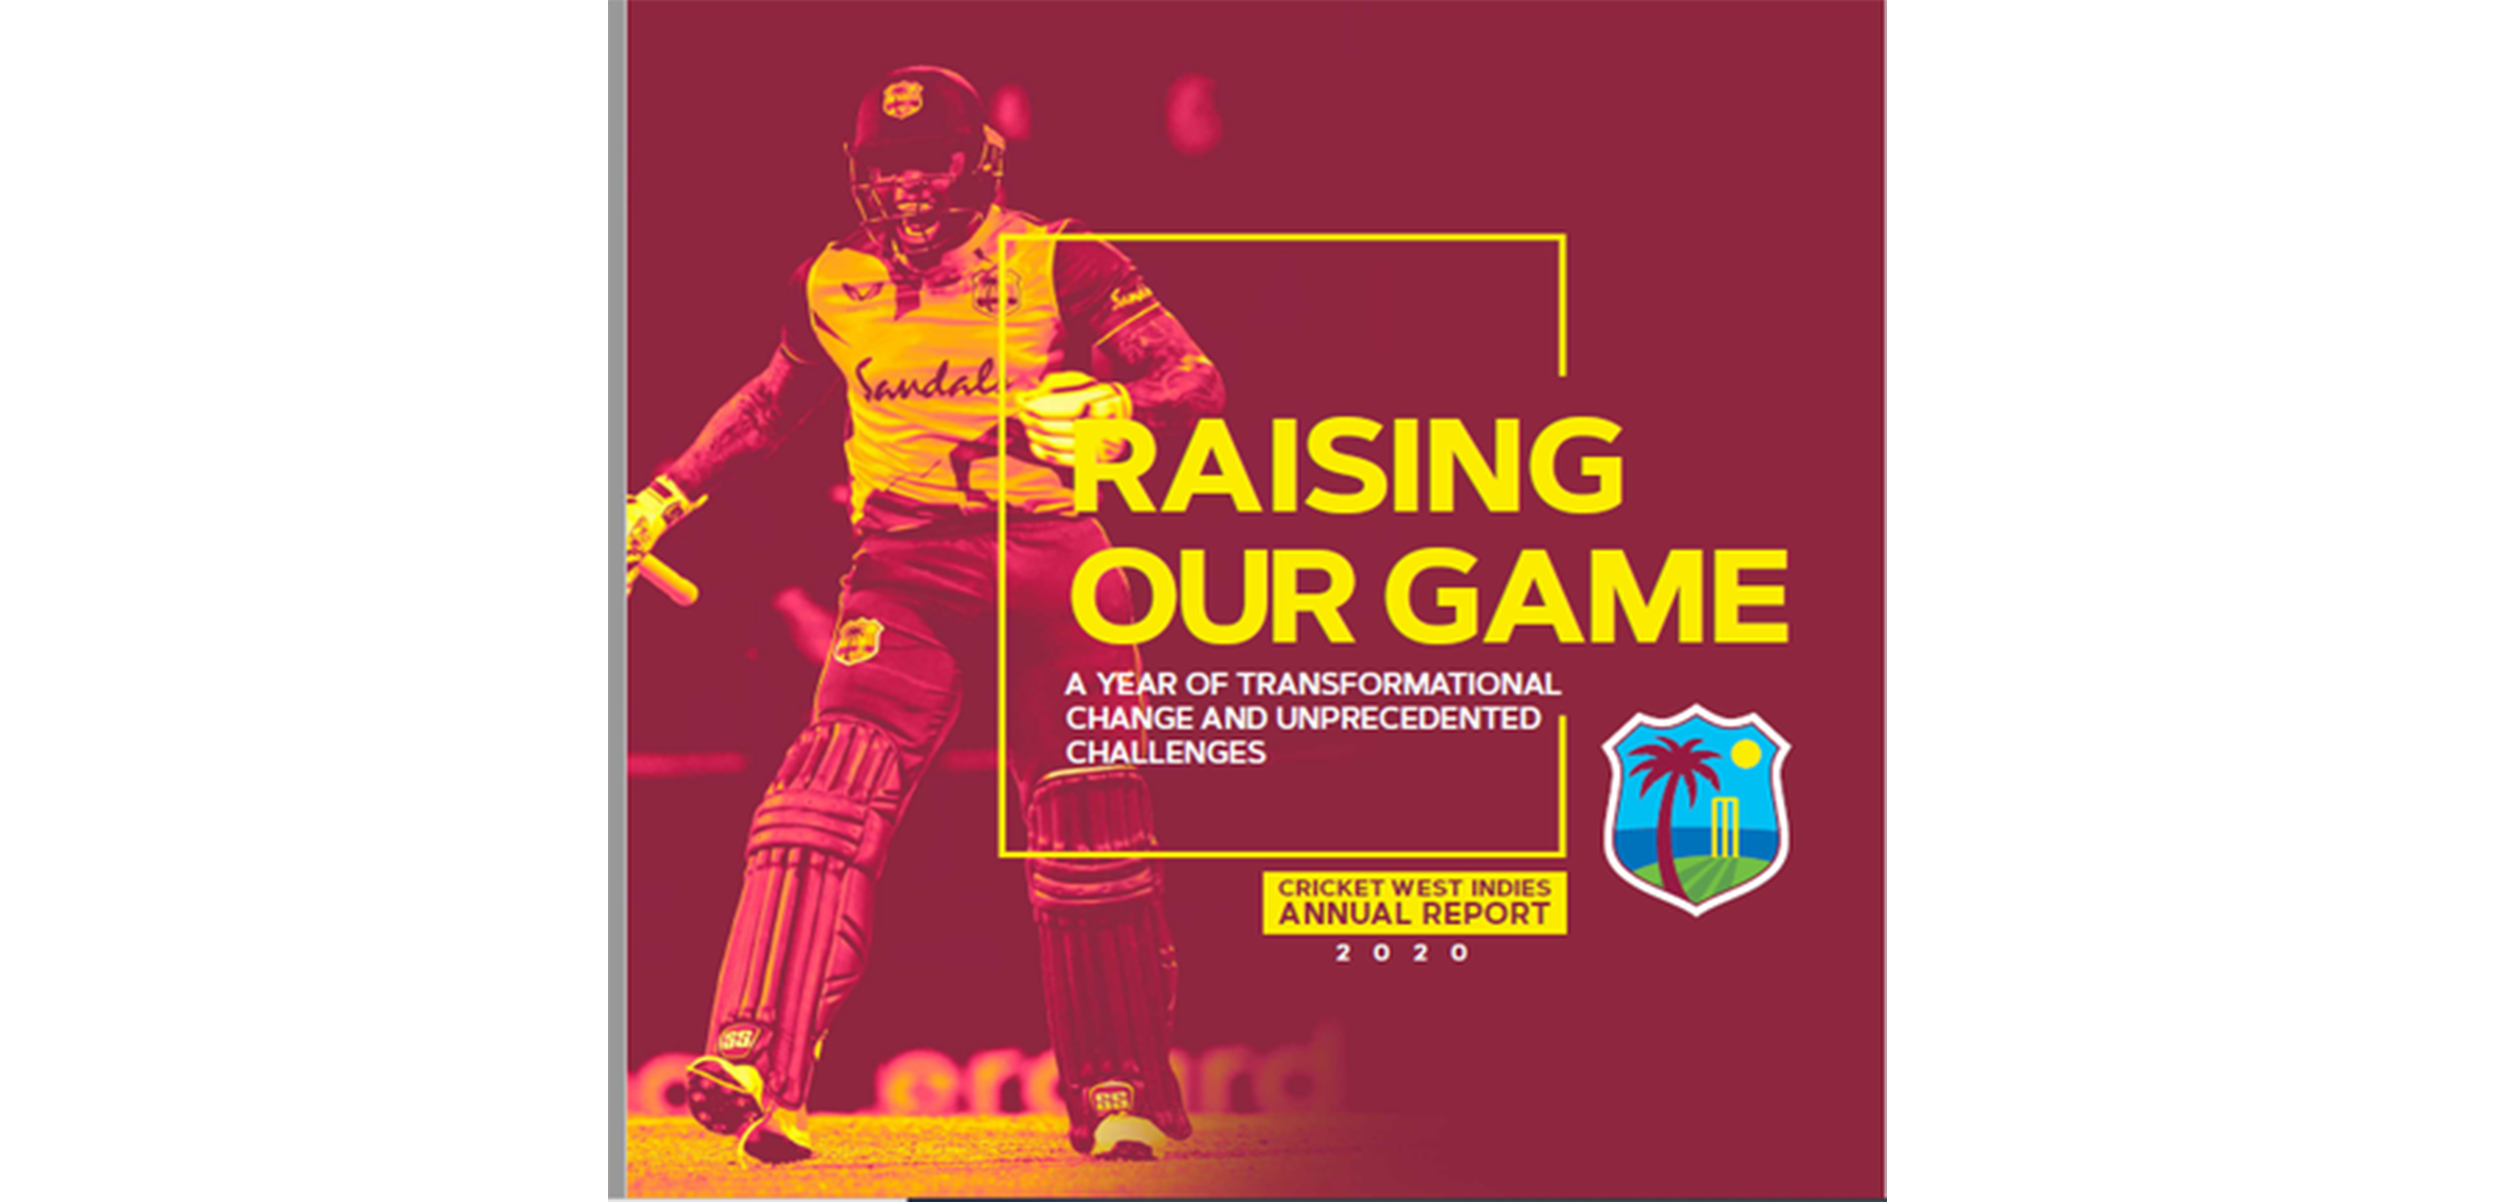 CWI annual report Oct 2019-2020 - Now available to download